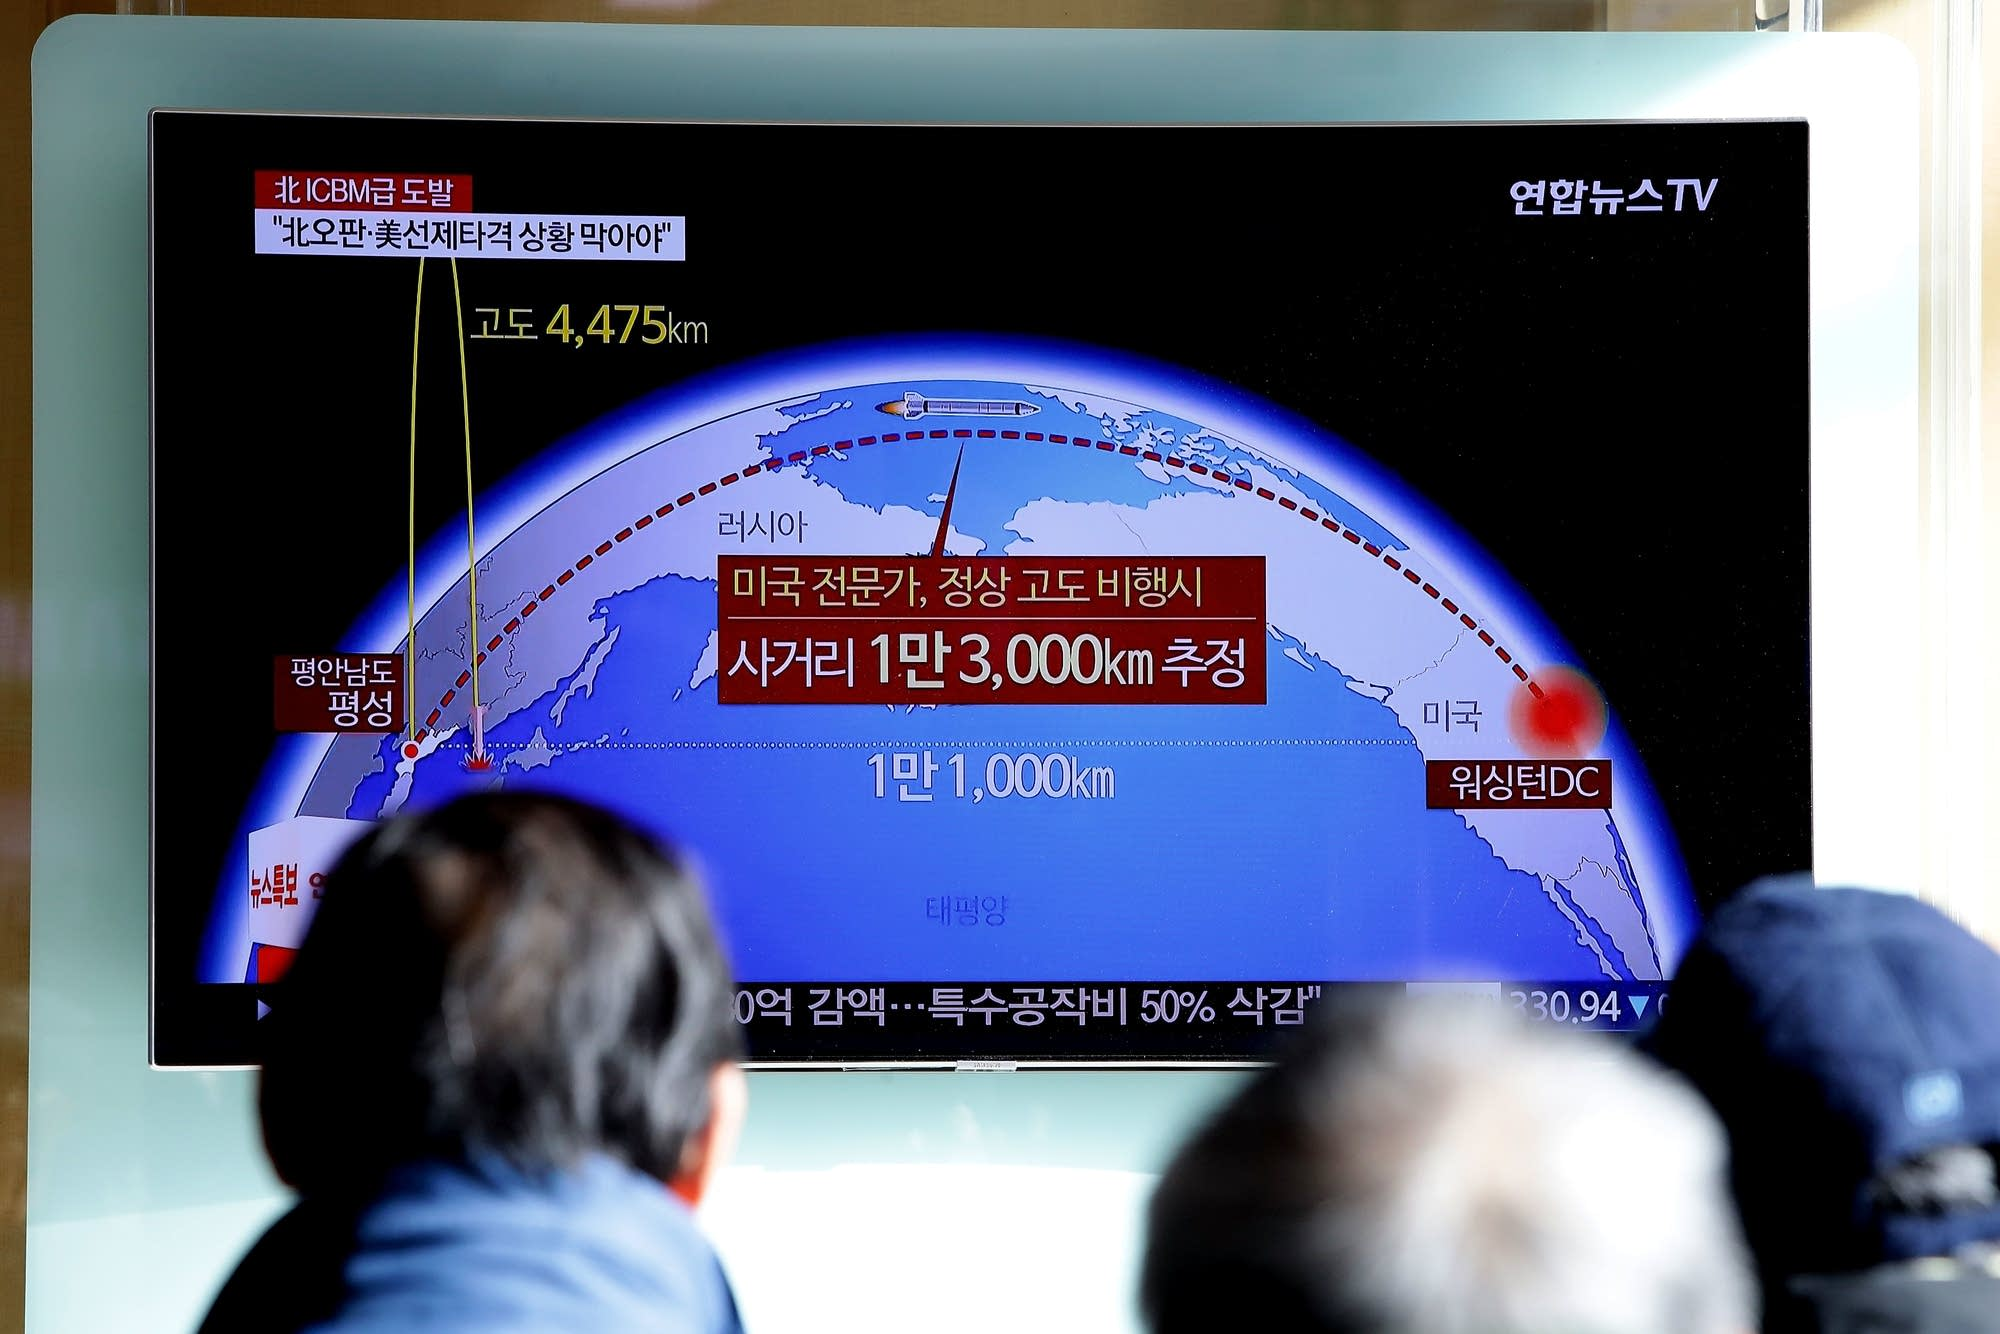 South Korea reacts to North's missile launch